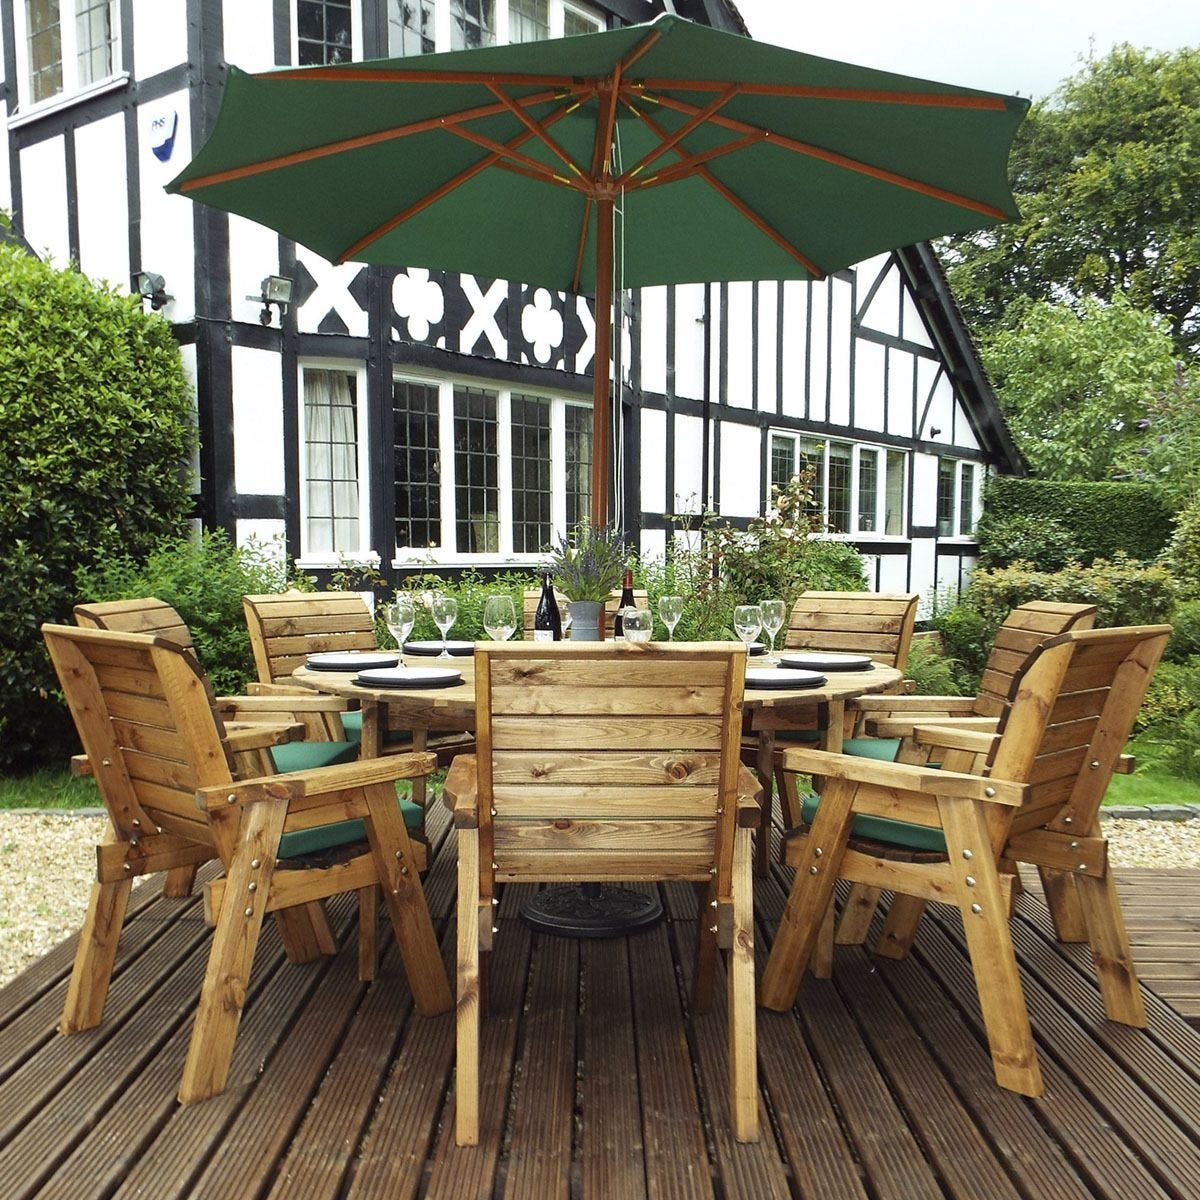 Charles Taylor 8 Seater Round Table Set with Cushions, Storage Bag, Parasol and Base